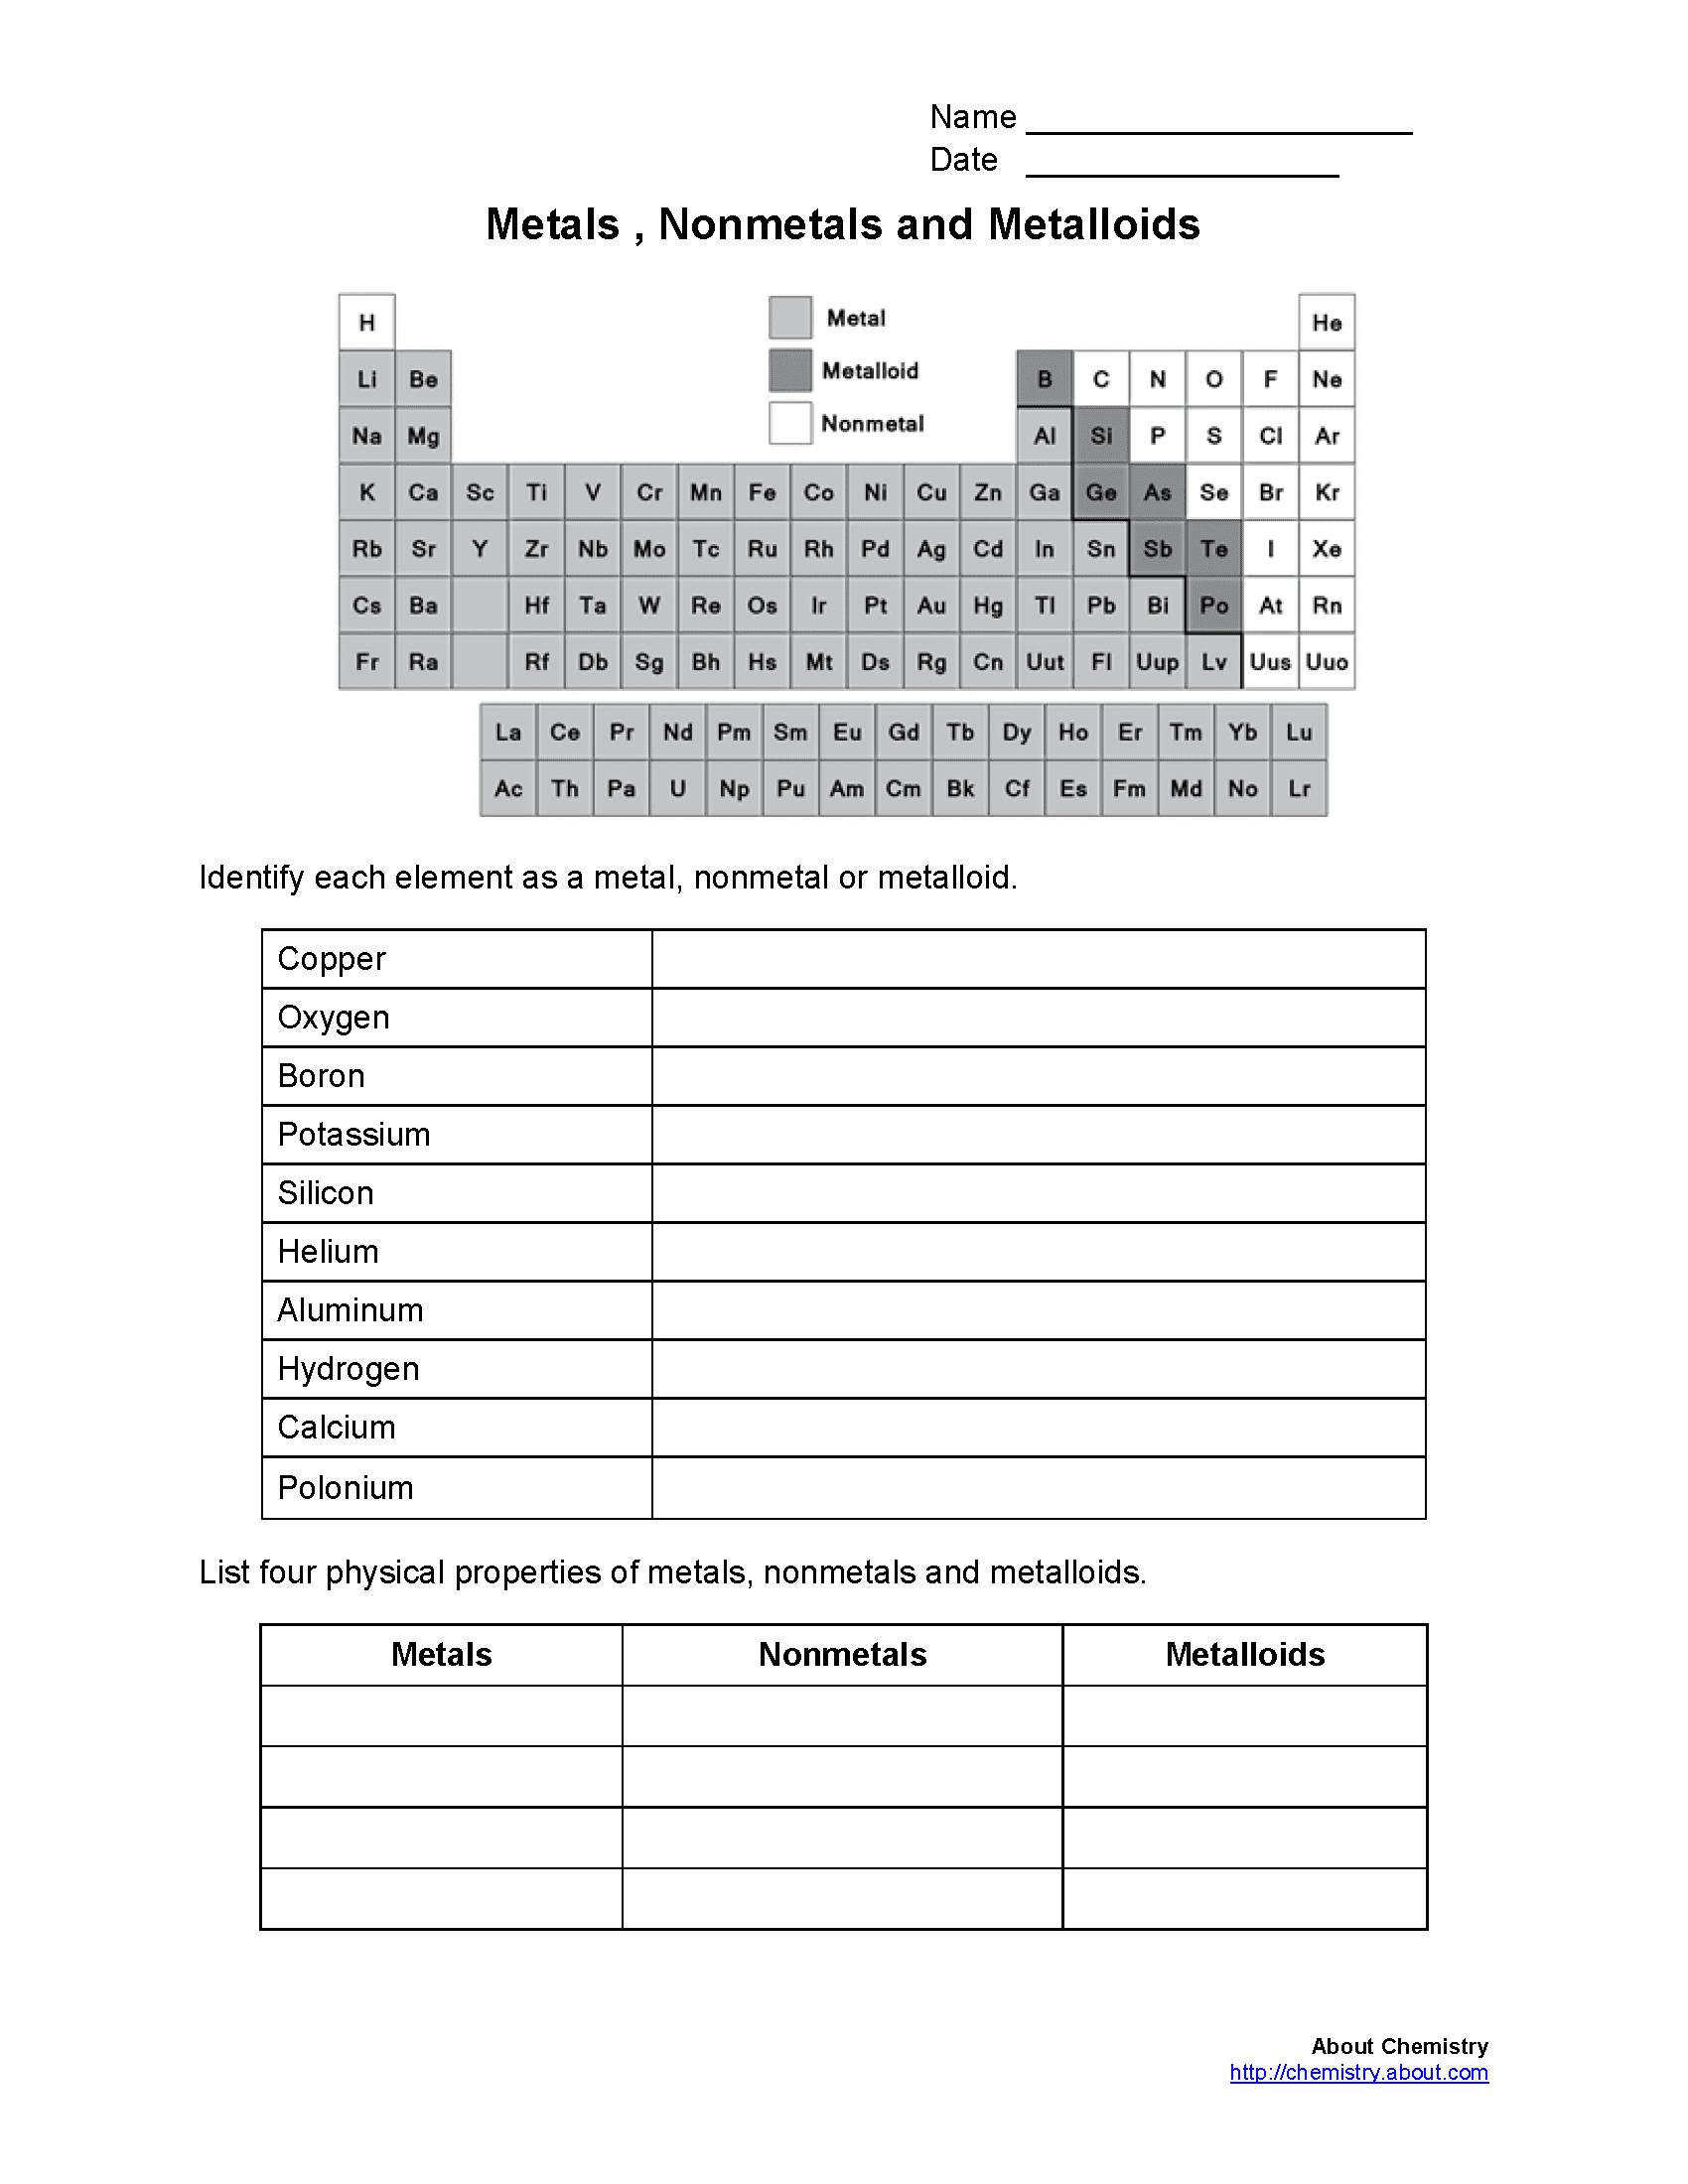 Metals Nonmetals Metalloids Worksheet